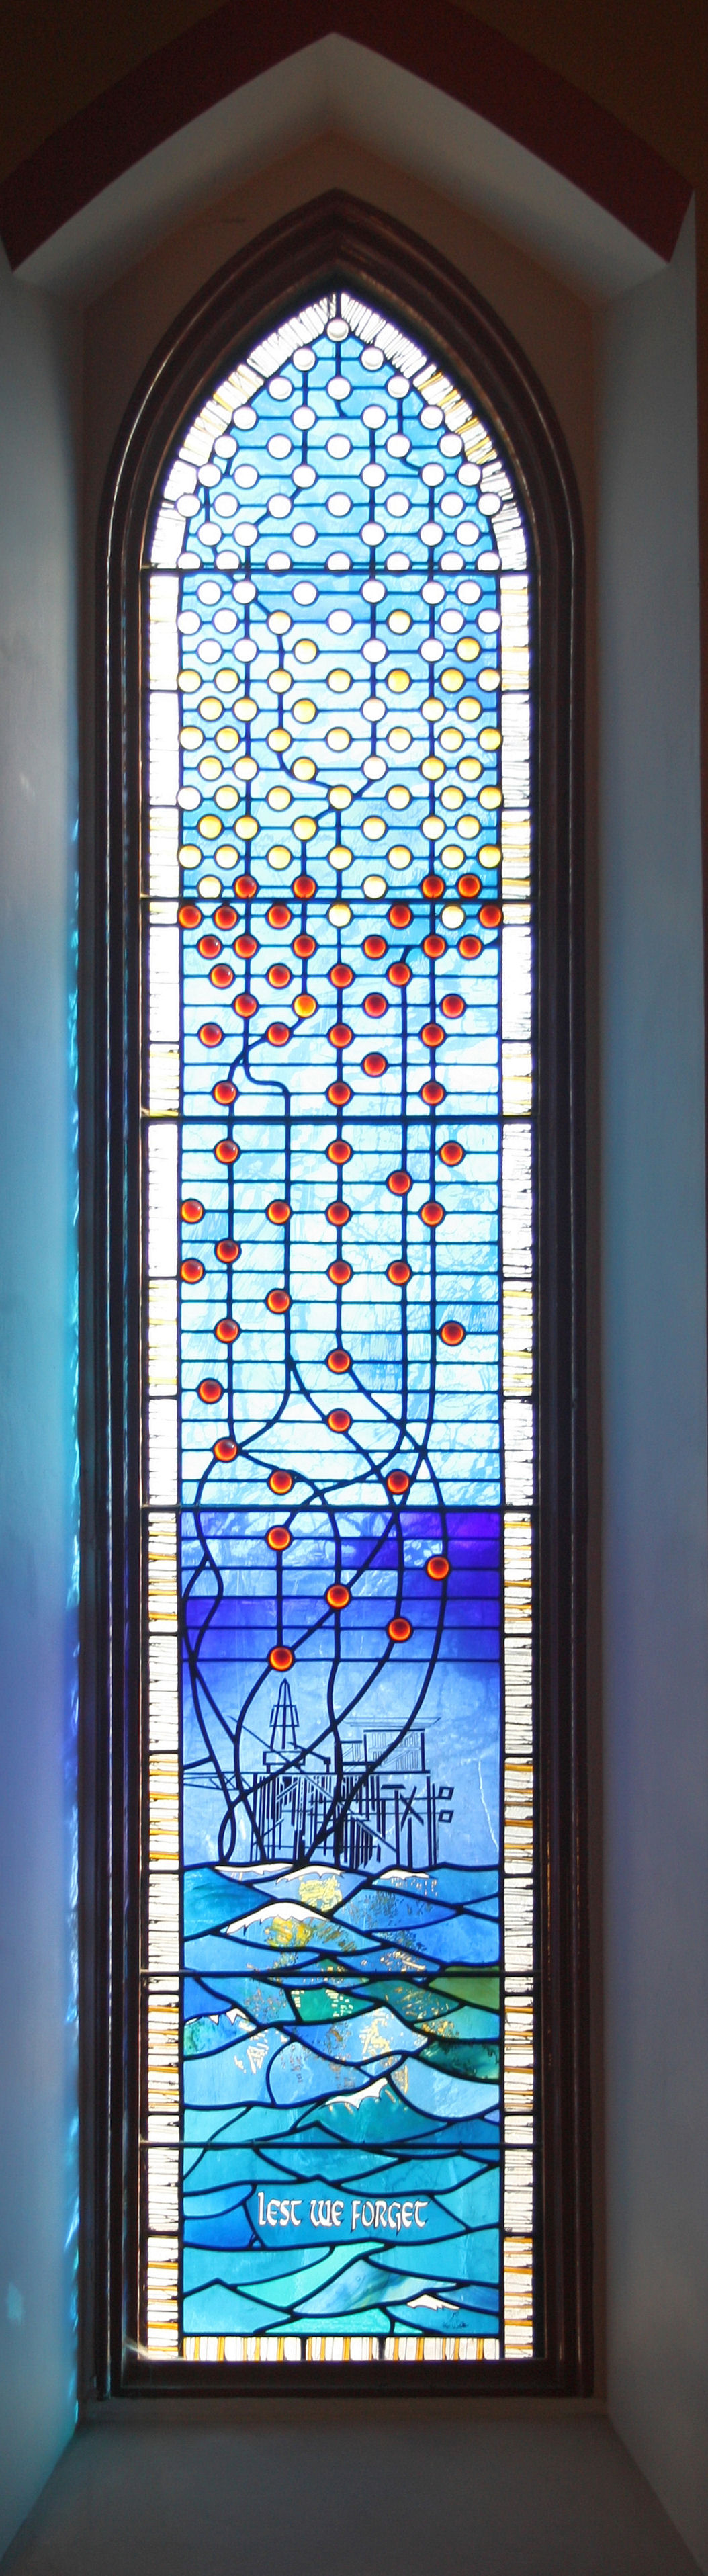 The_Piper_Alpha_Window_Ferryhill_Church_Aberdeen_-_geograph.org_.uk_-_1801868